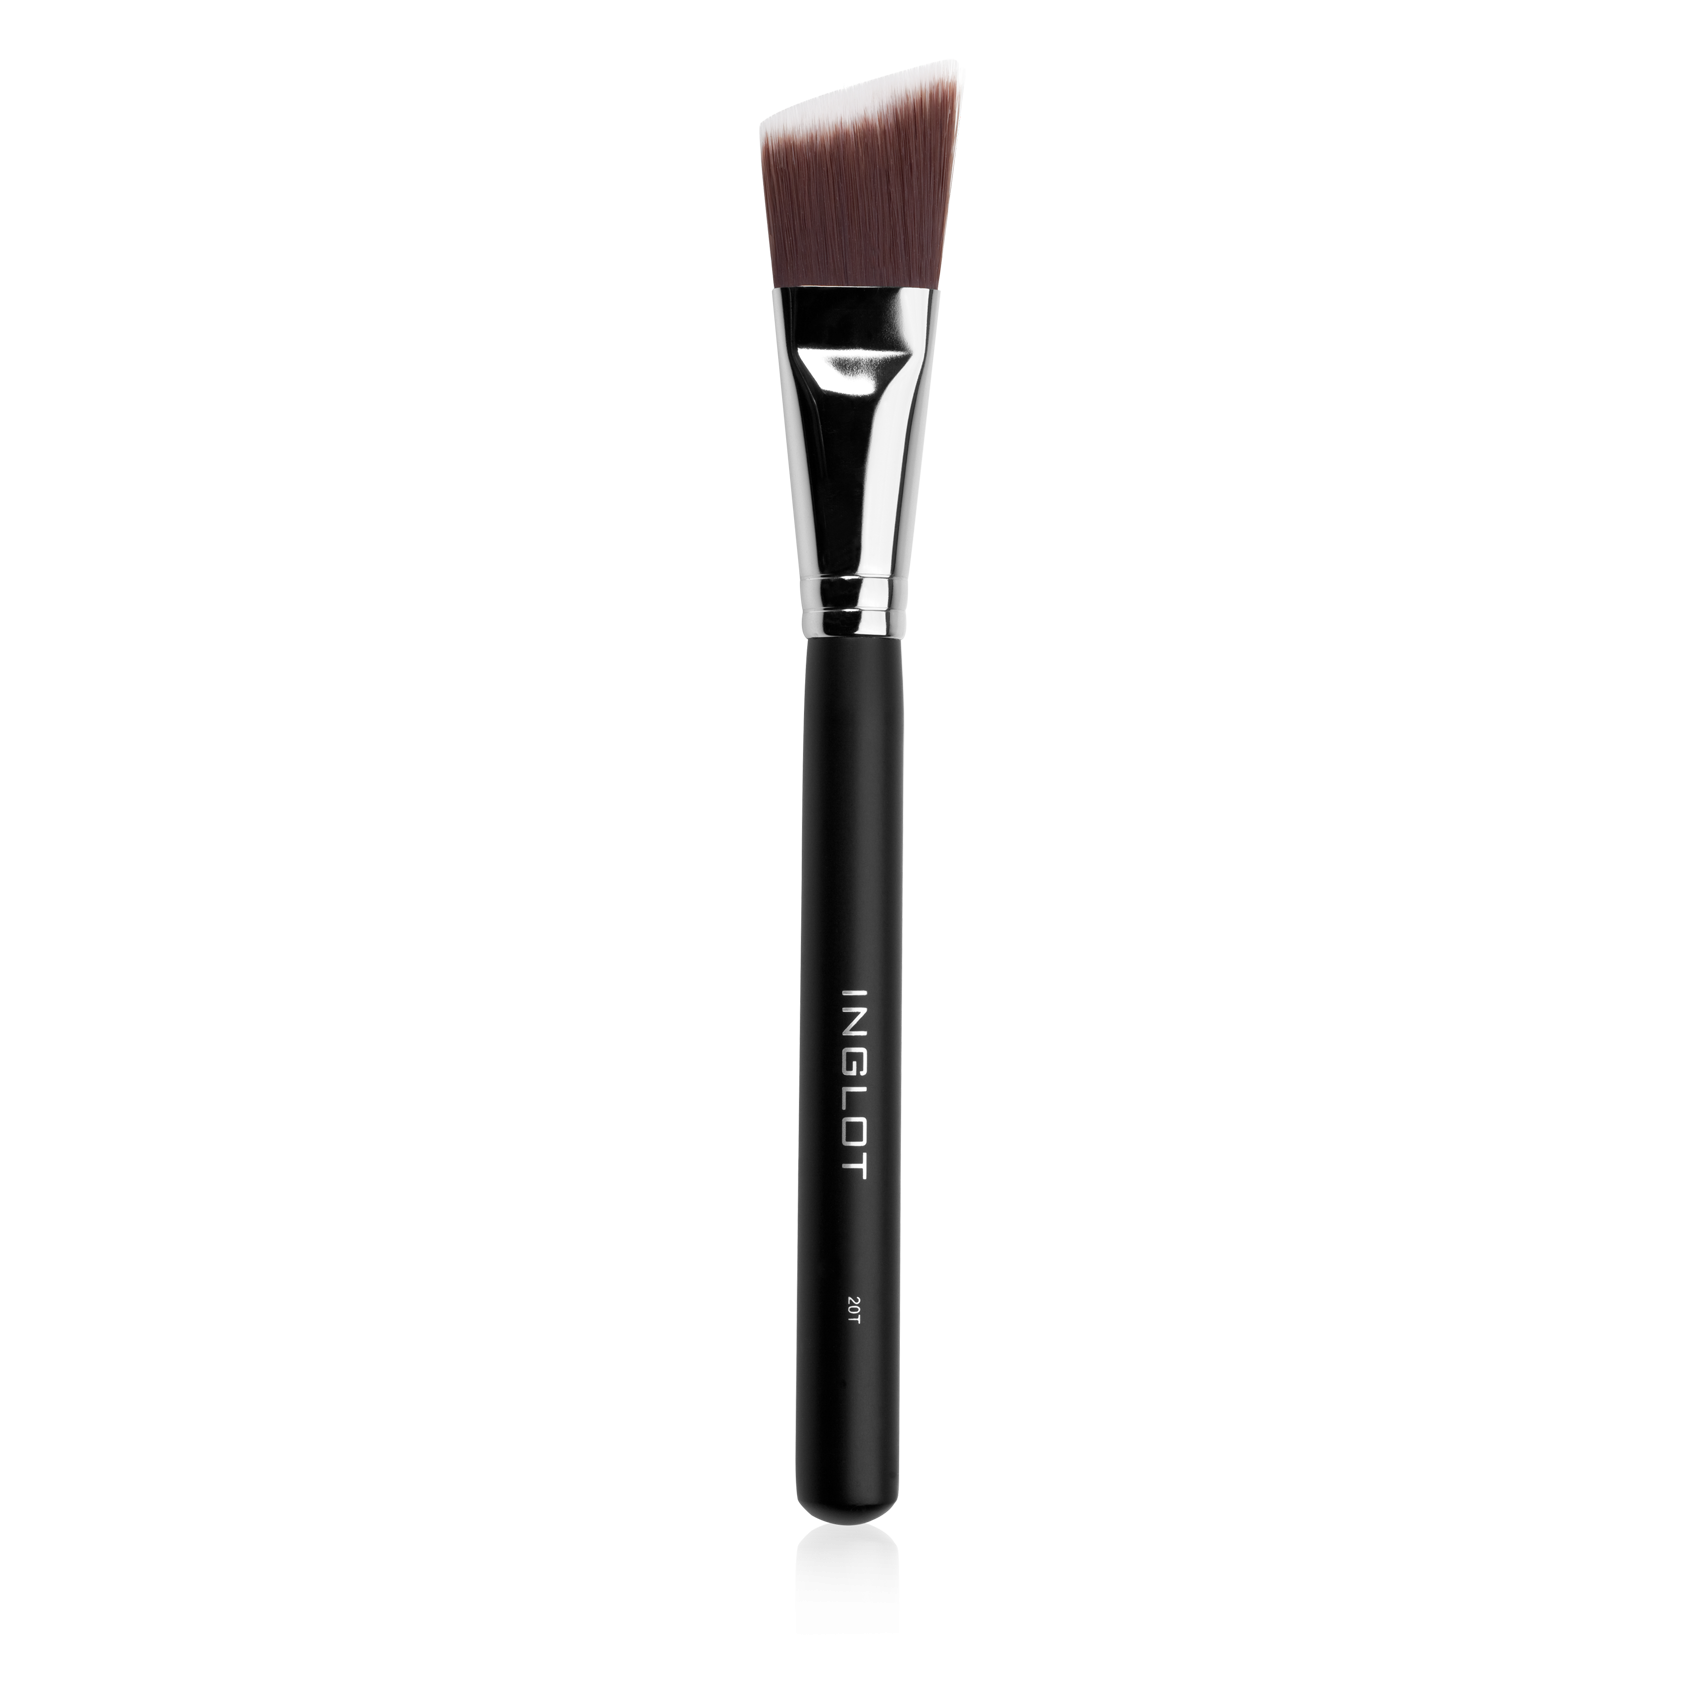 Makeup brushes png. Brush t